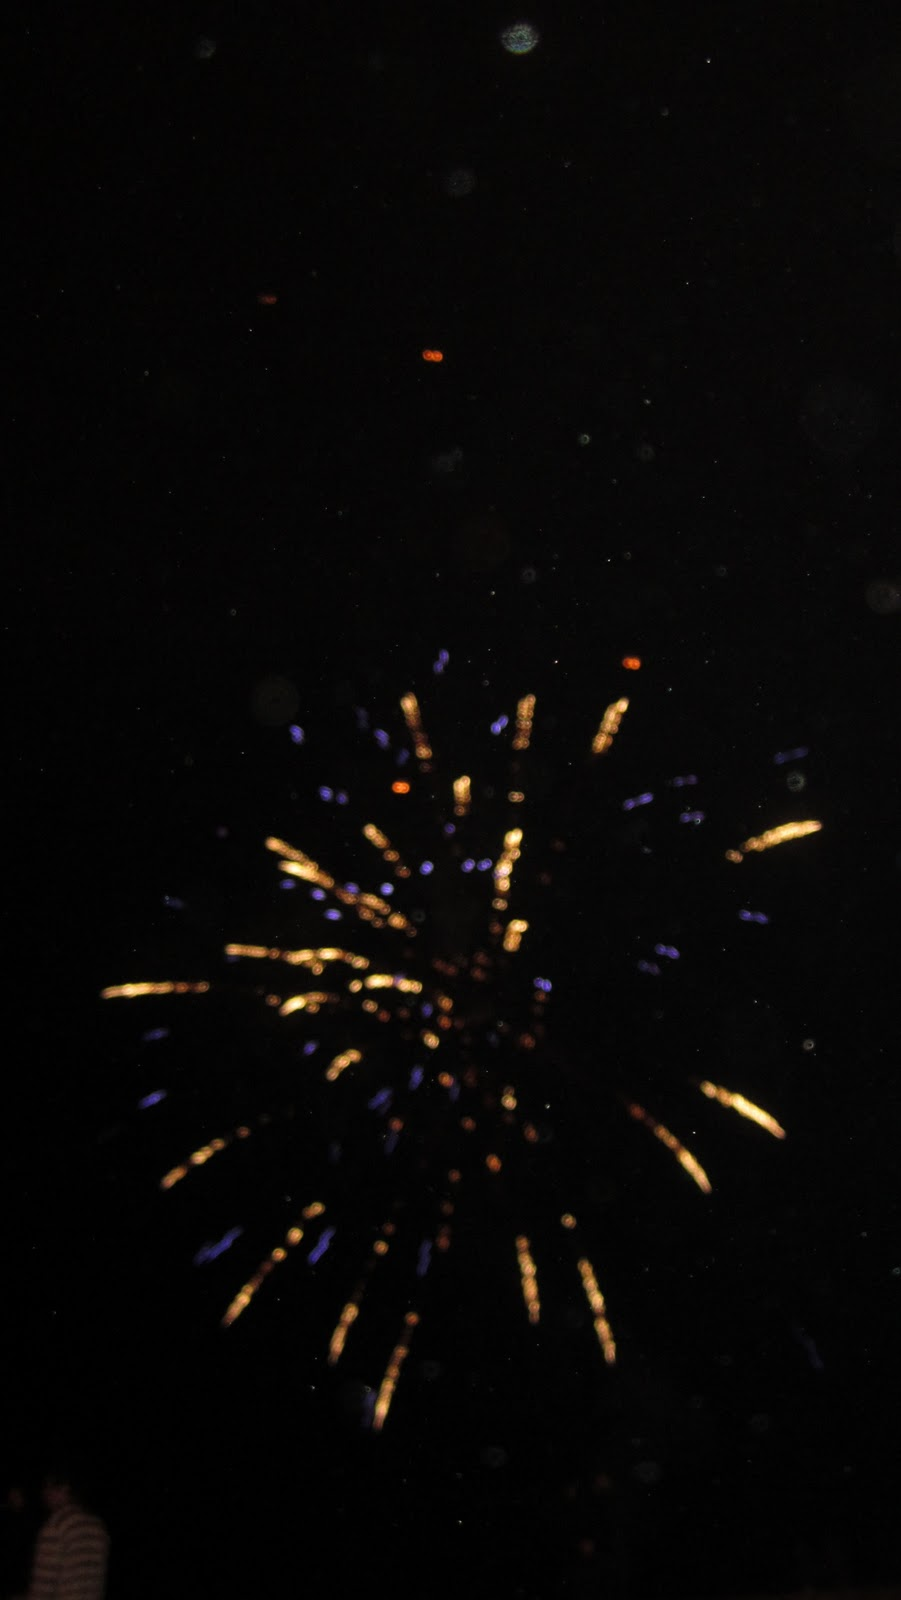 Bring on 2011! Happy New Year!